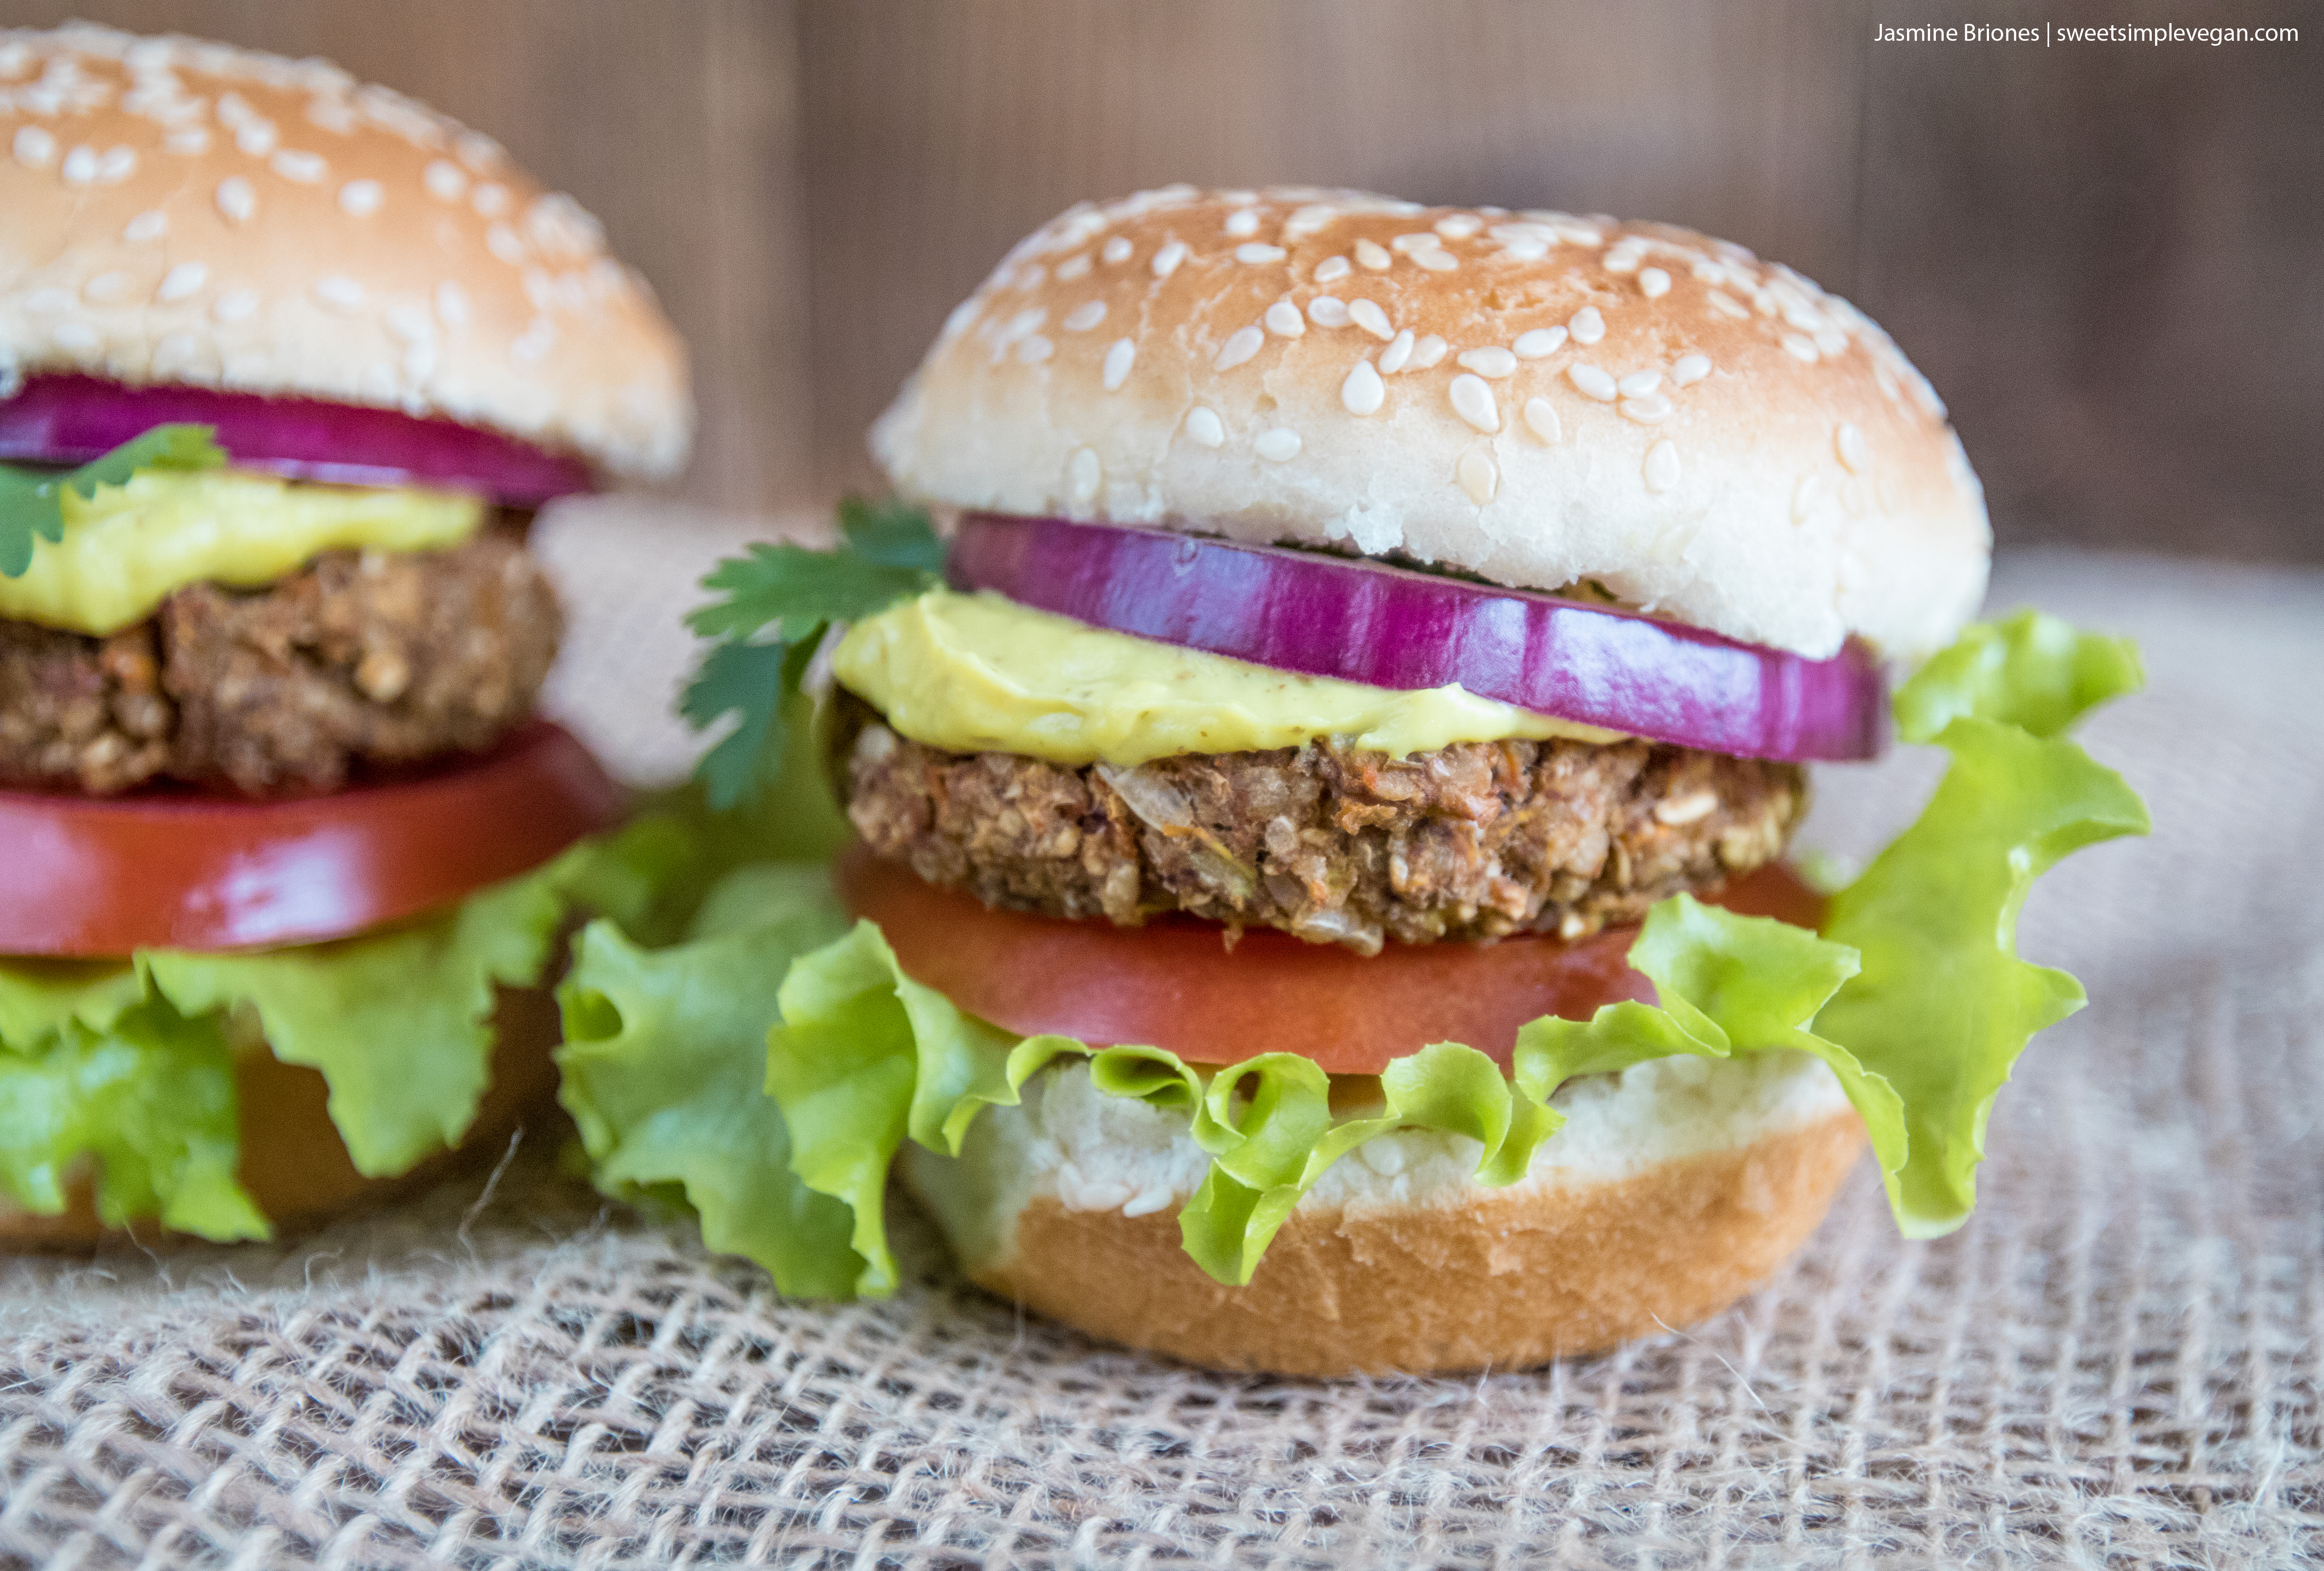 These veggie burger sliders are easy to make, jam-packed with flavor and the perfect recipe to meal prep at home for the week! It is loaded with protein along with a plethora of vegetables, so you'll be able to enjoy a delicious vegan burger without skimping out on nutrition! #veggie #burger #vegan #veganprotein #sliders #lunch #dinner #entree #savory #mealprep #leftovers #easy #nutritious